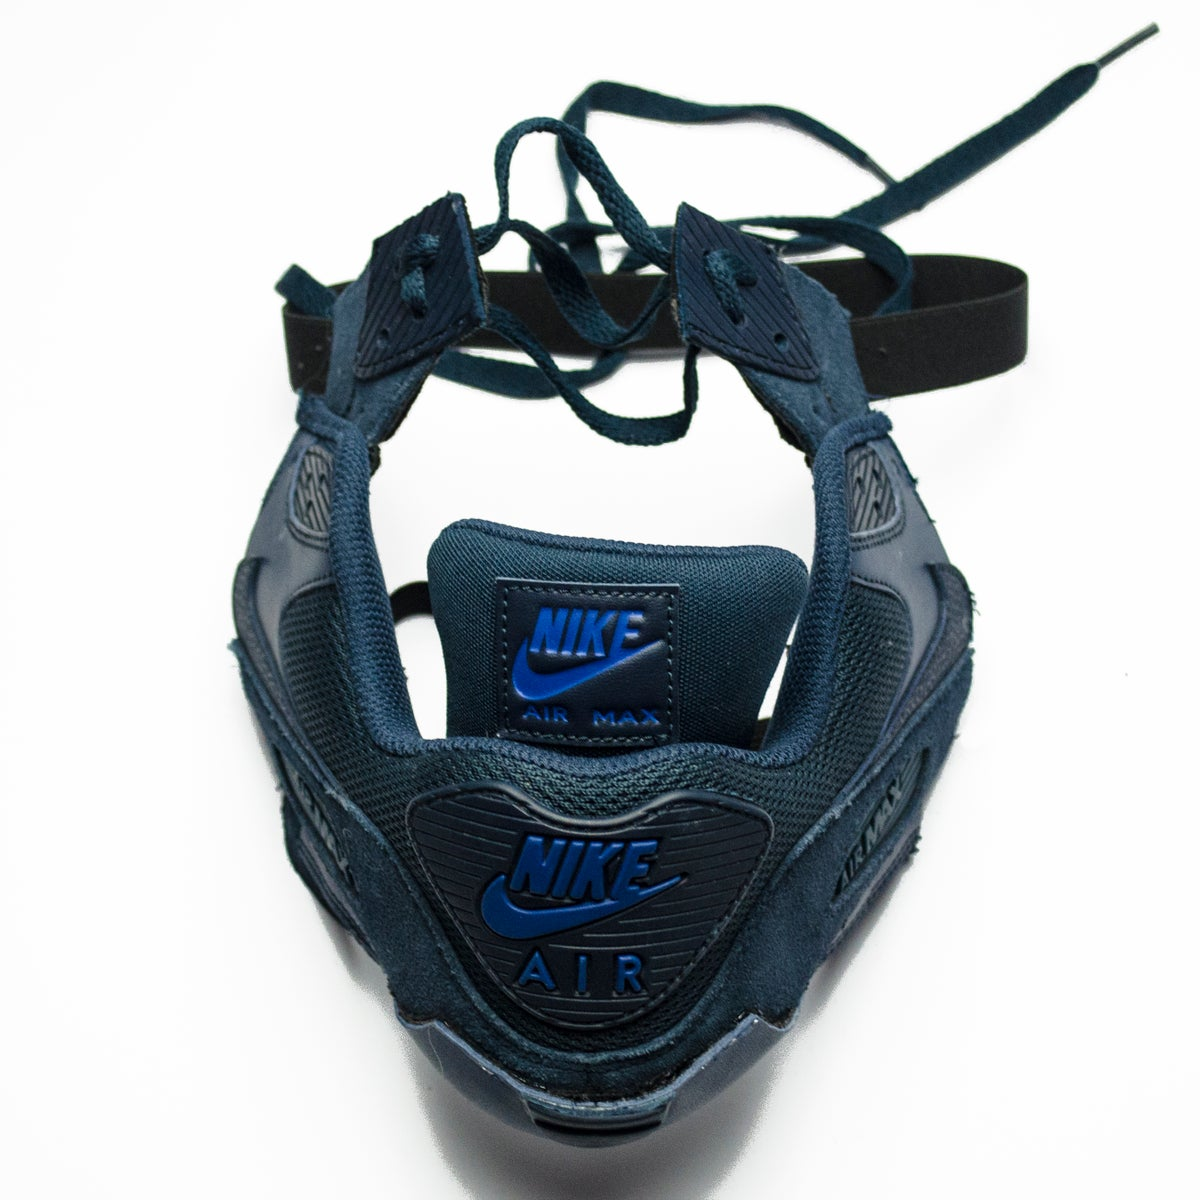 Image of SNEAKER MASK / AIR MASK 90 / NAVY BLUE